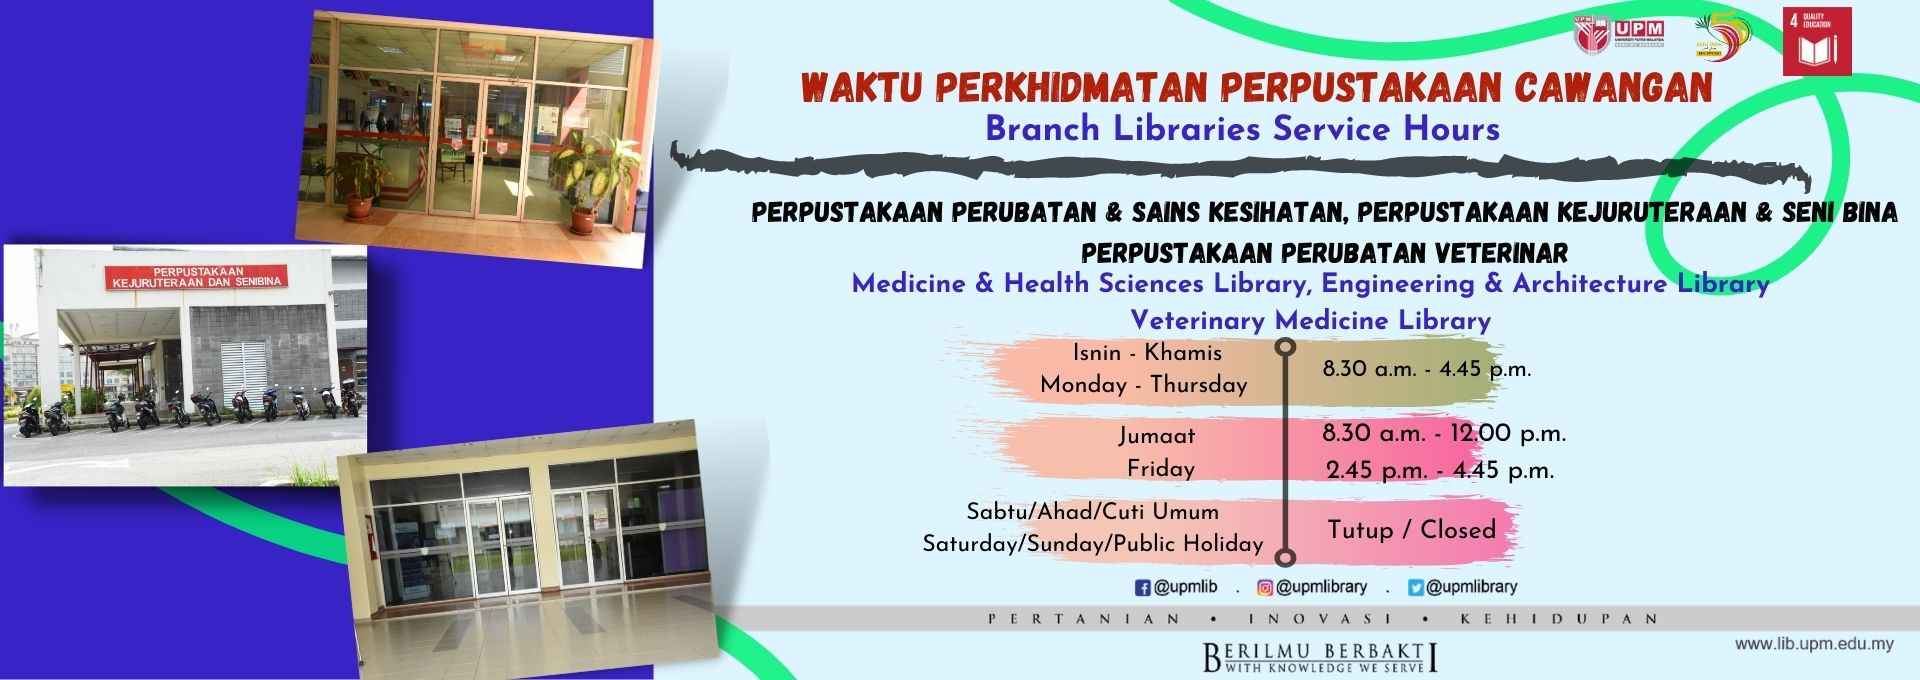 Branch Libraries Operation Hours